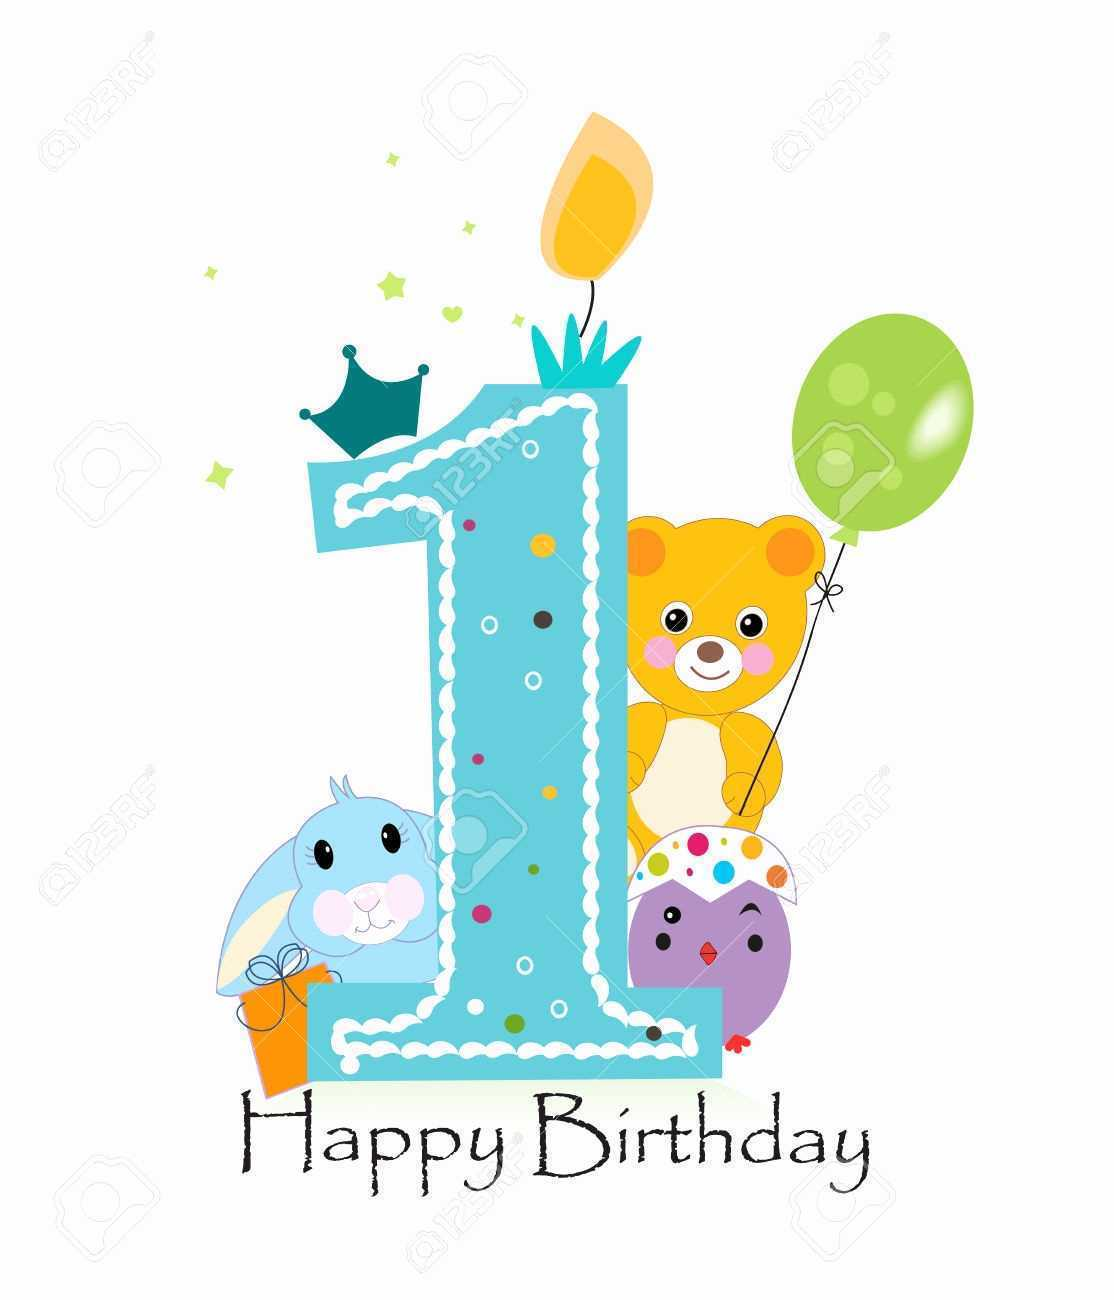 Images for baby awesome. Boys clipart happy birthday